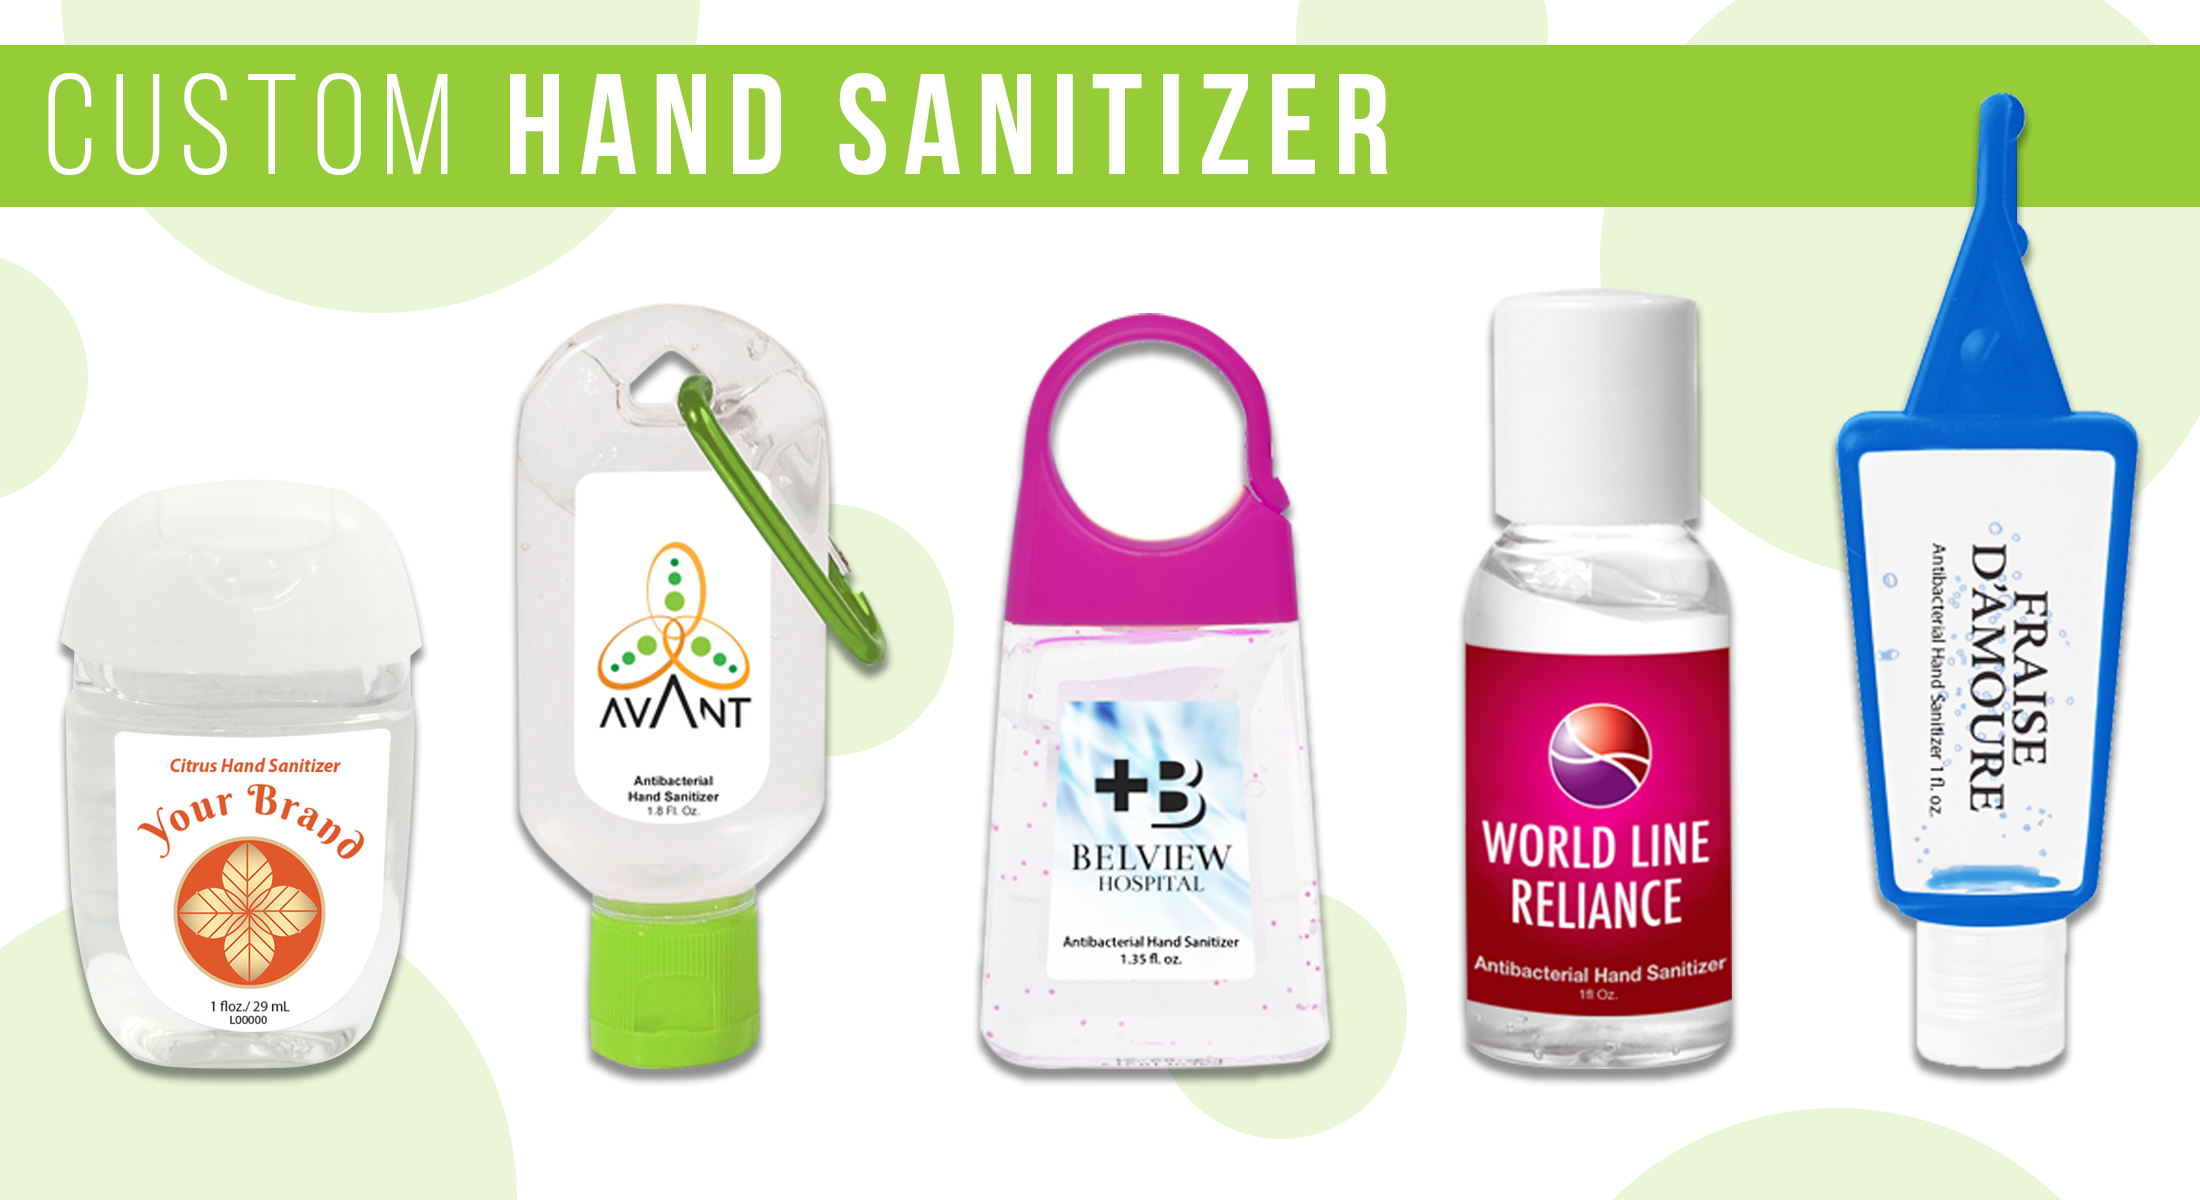 Be Safe, Stay Clean – Custom Hand Sanitizers